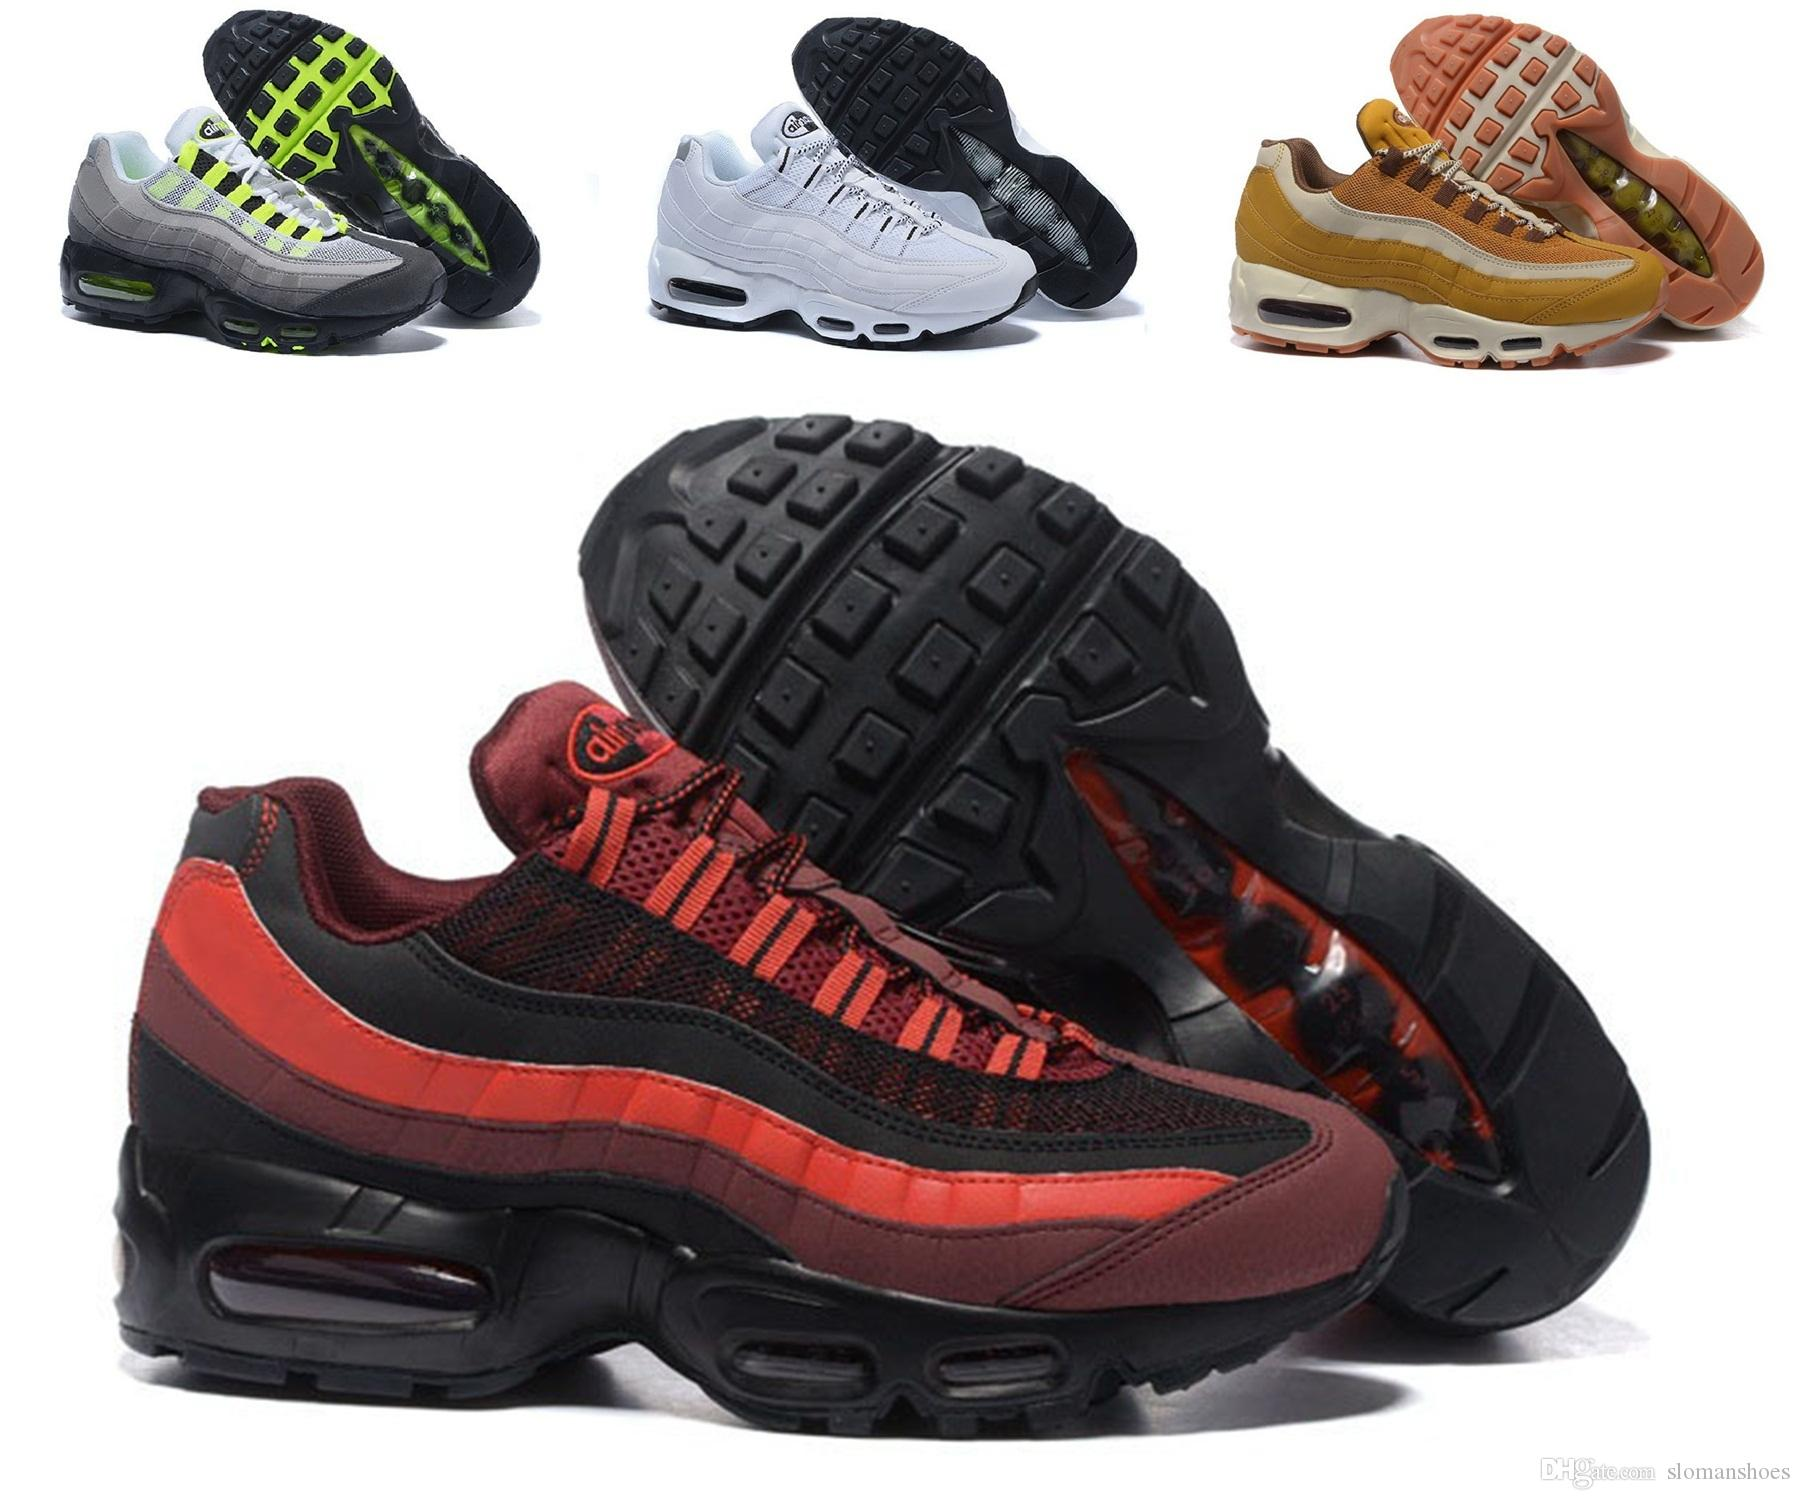 Wholesale!Men Air Cushion 95 Running Shoes Authentic Sports Shoes For Men Top Sneakers cheap price low shipping fee outlet great deals cheap sale fashionable clearance geniue stockist coNMlV